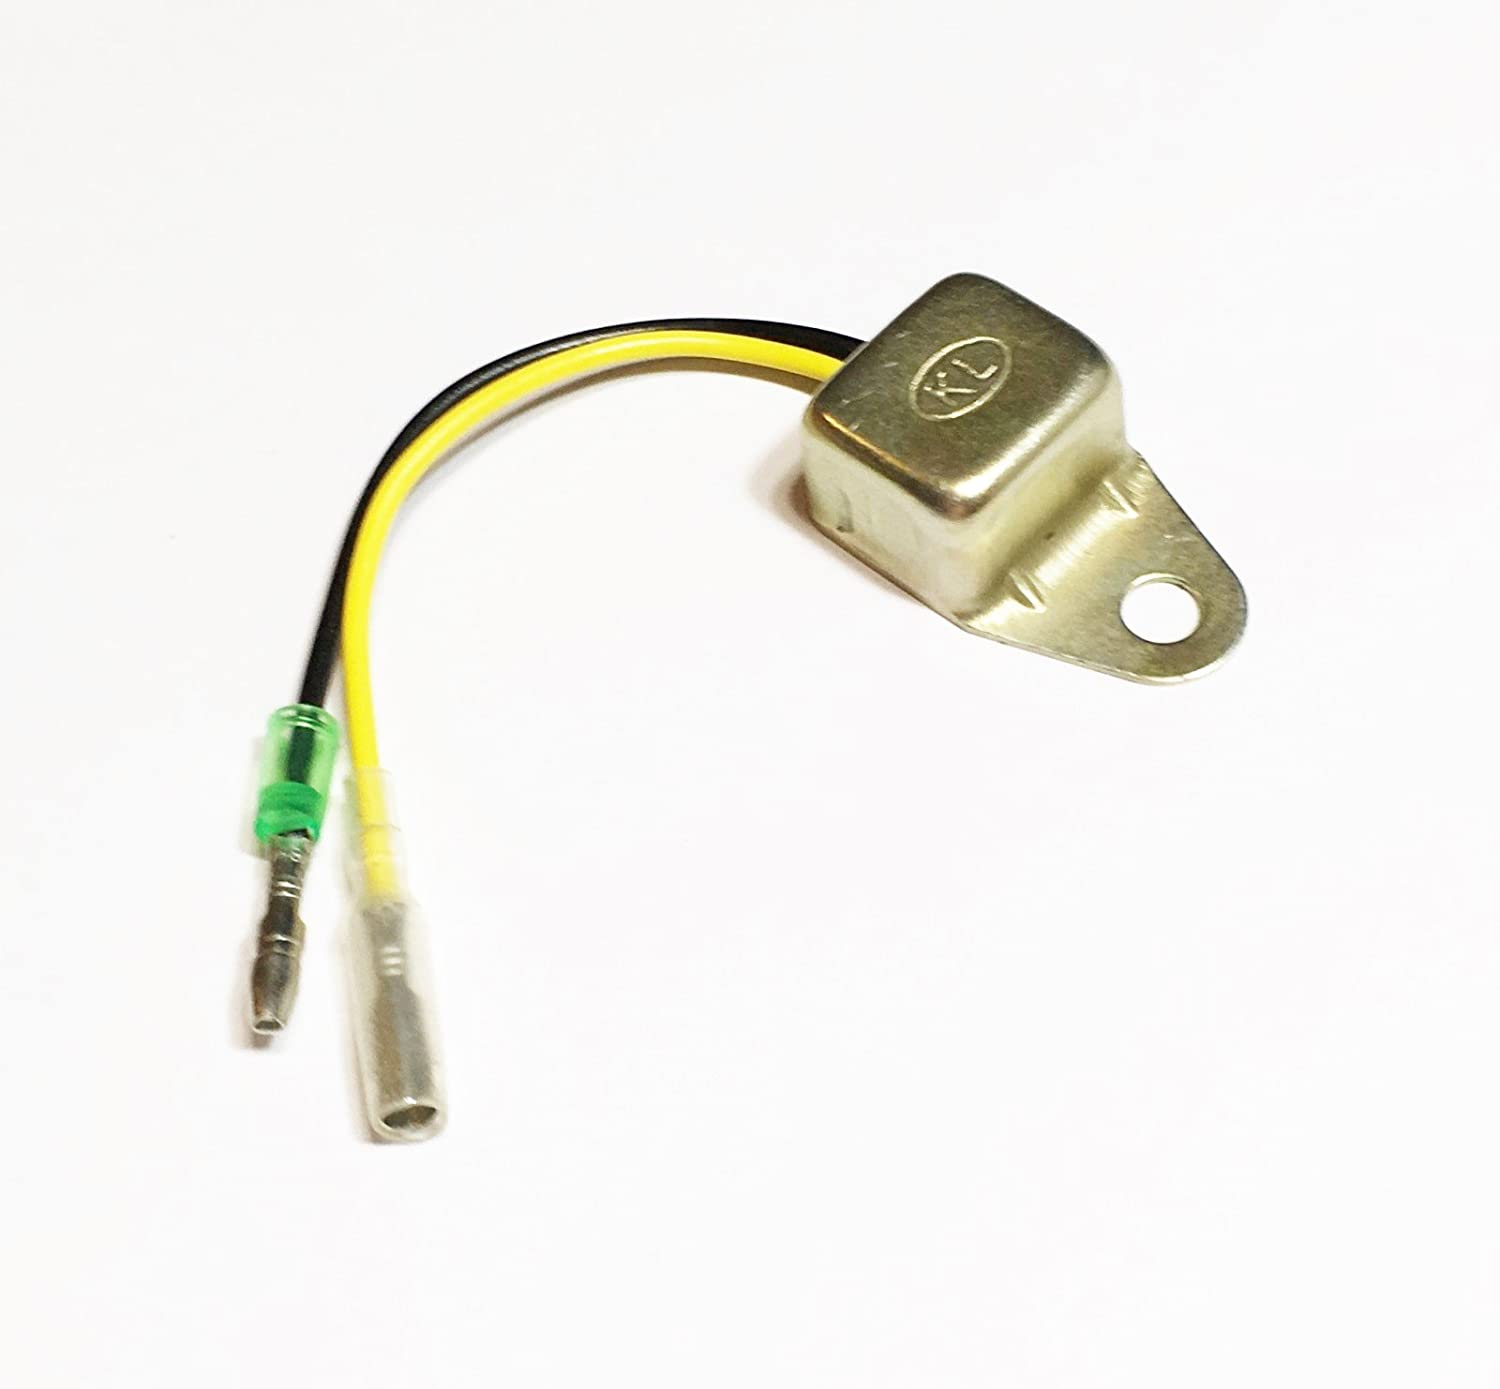 Sellerocity Brand Oil Alert Compatible Replacement for Honeywell Sycamore 11700138 Model 6036 6037 6038 6039 HW6200L HW5500 HW5500E HW5500EL HW5500L HW6200 HW4000L HW7500E HW7500EL HW3000